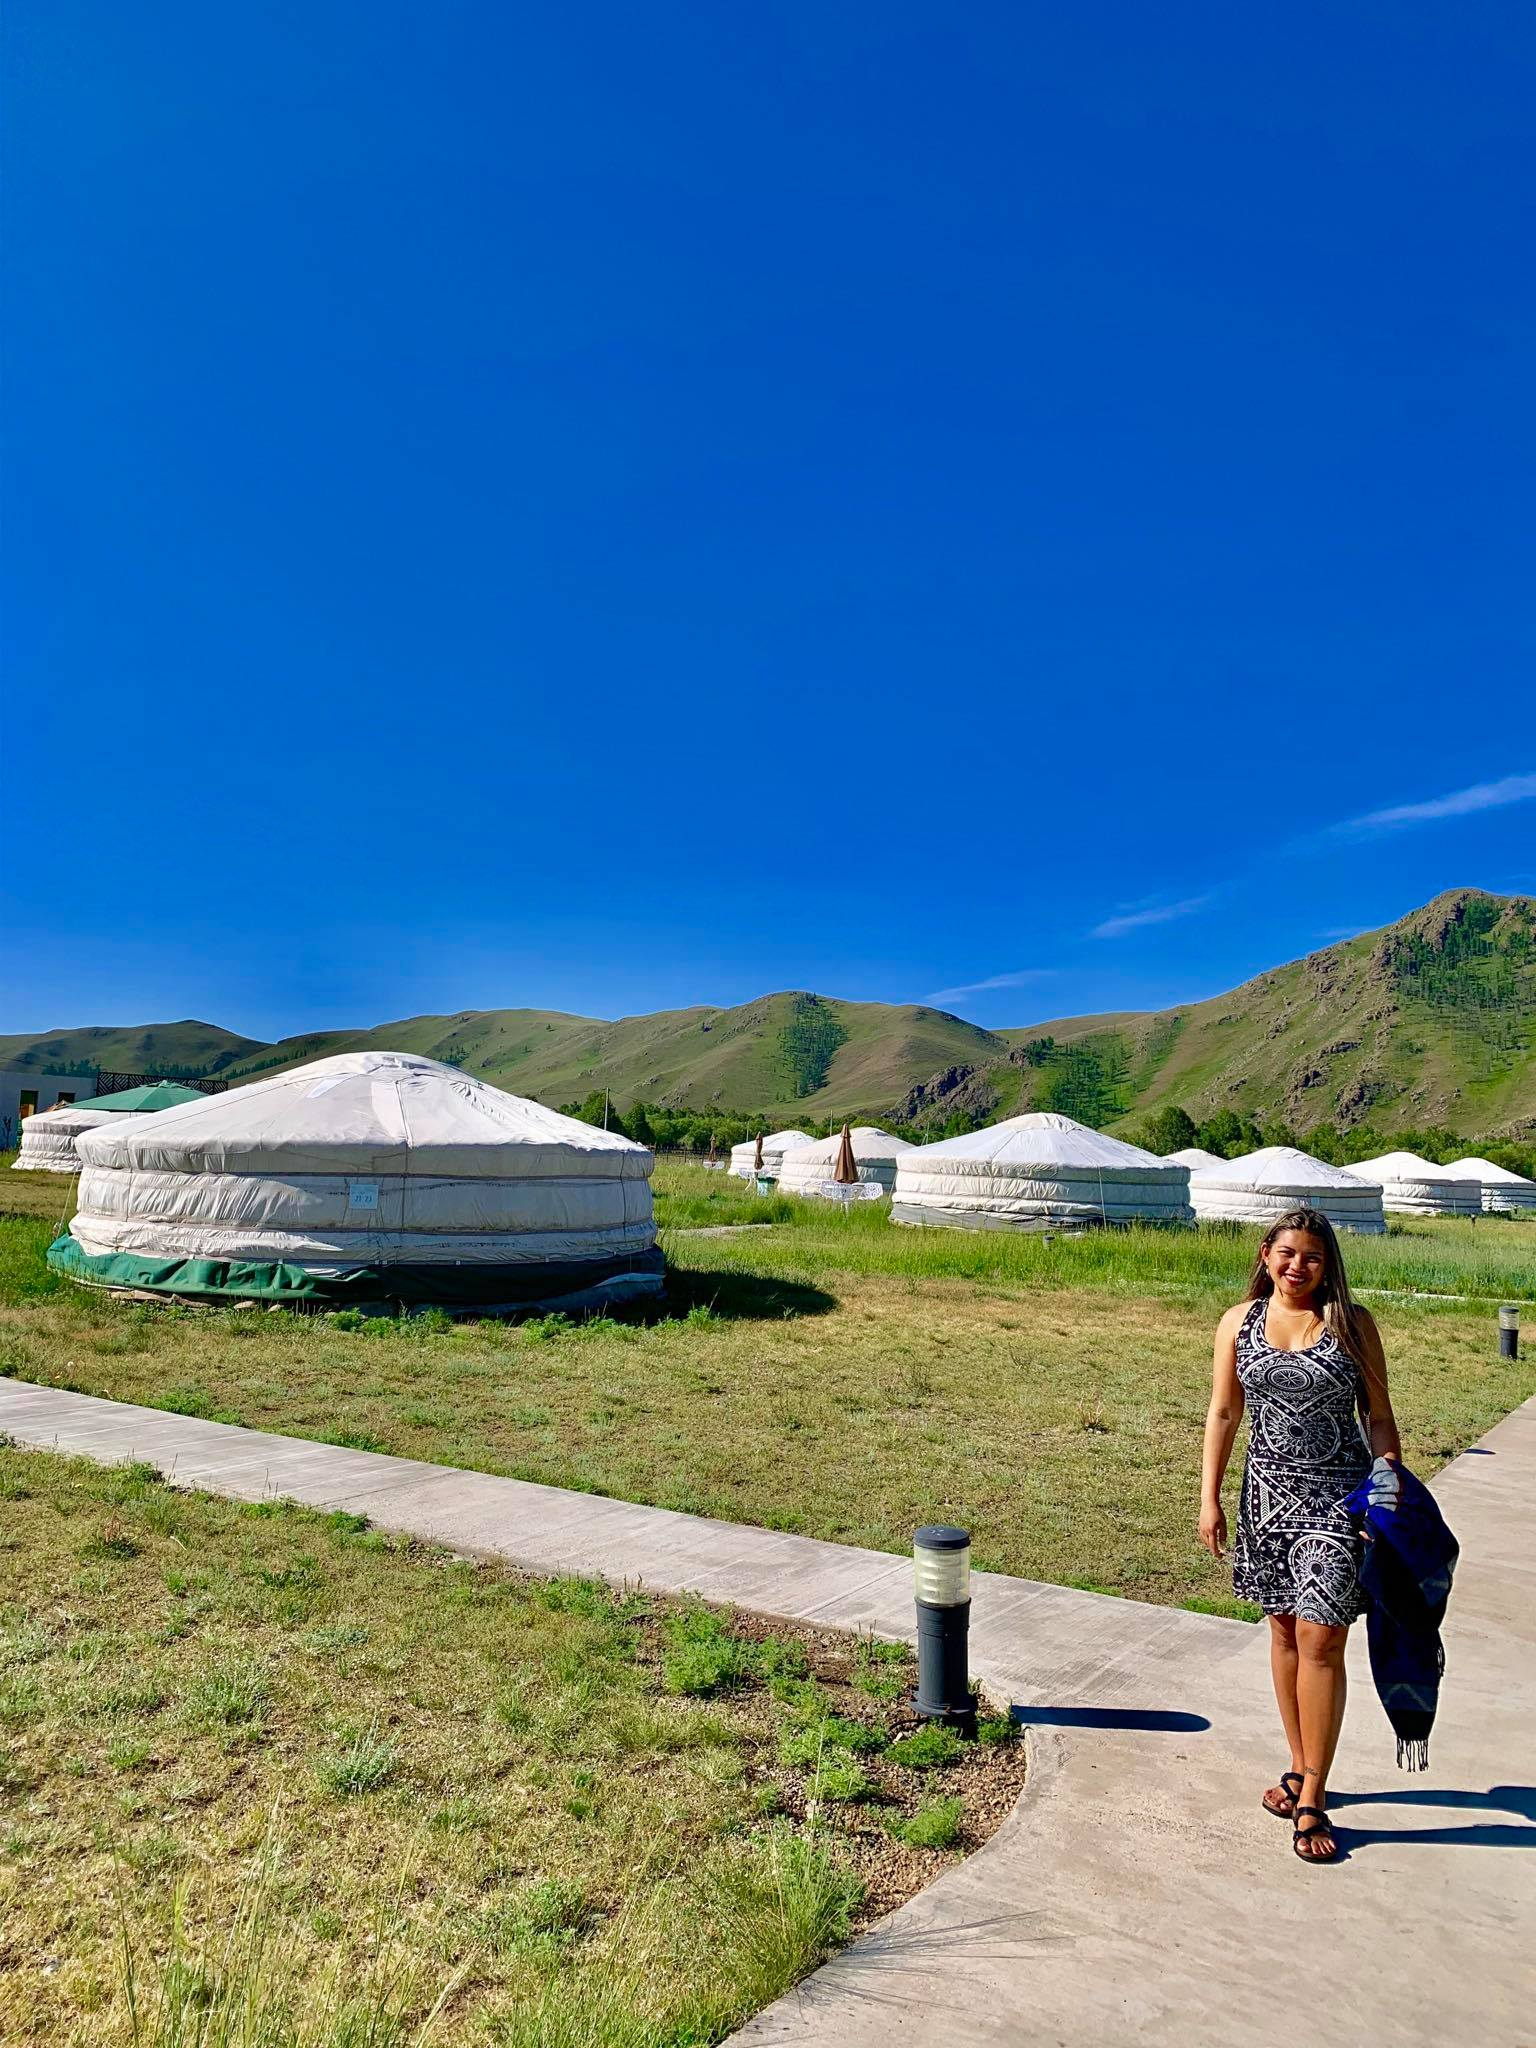 Kach Solo Travels in 2019 My place for 3 days here in Mongolia18.jpg